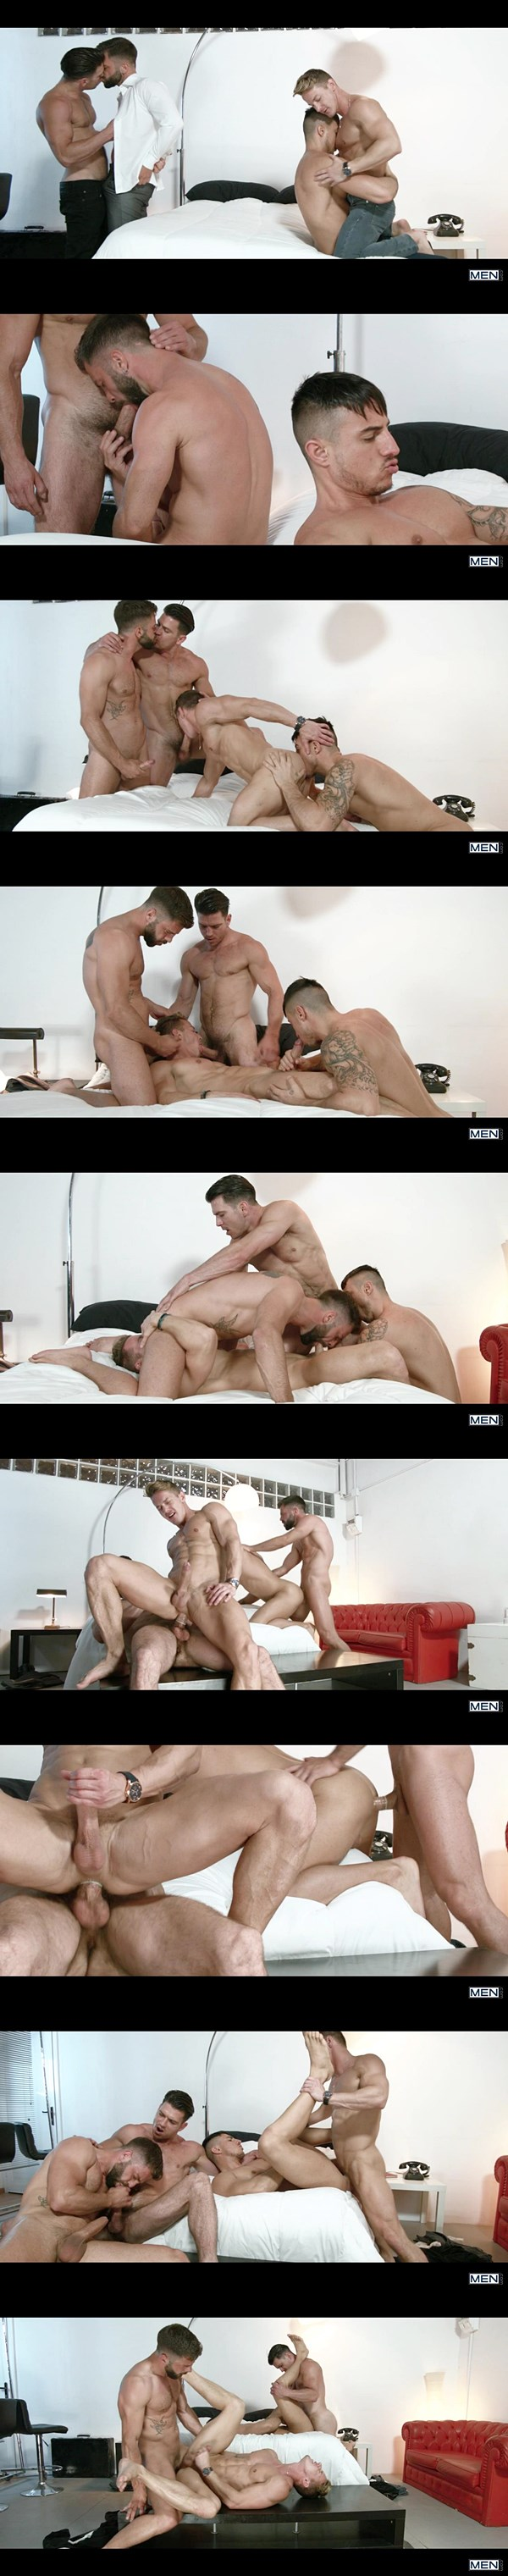 A Sneak Peek of Paddy O'Brian & Hector De Silva fucking Darius Ferdynand & Klein Kerr at Jizzorgy